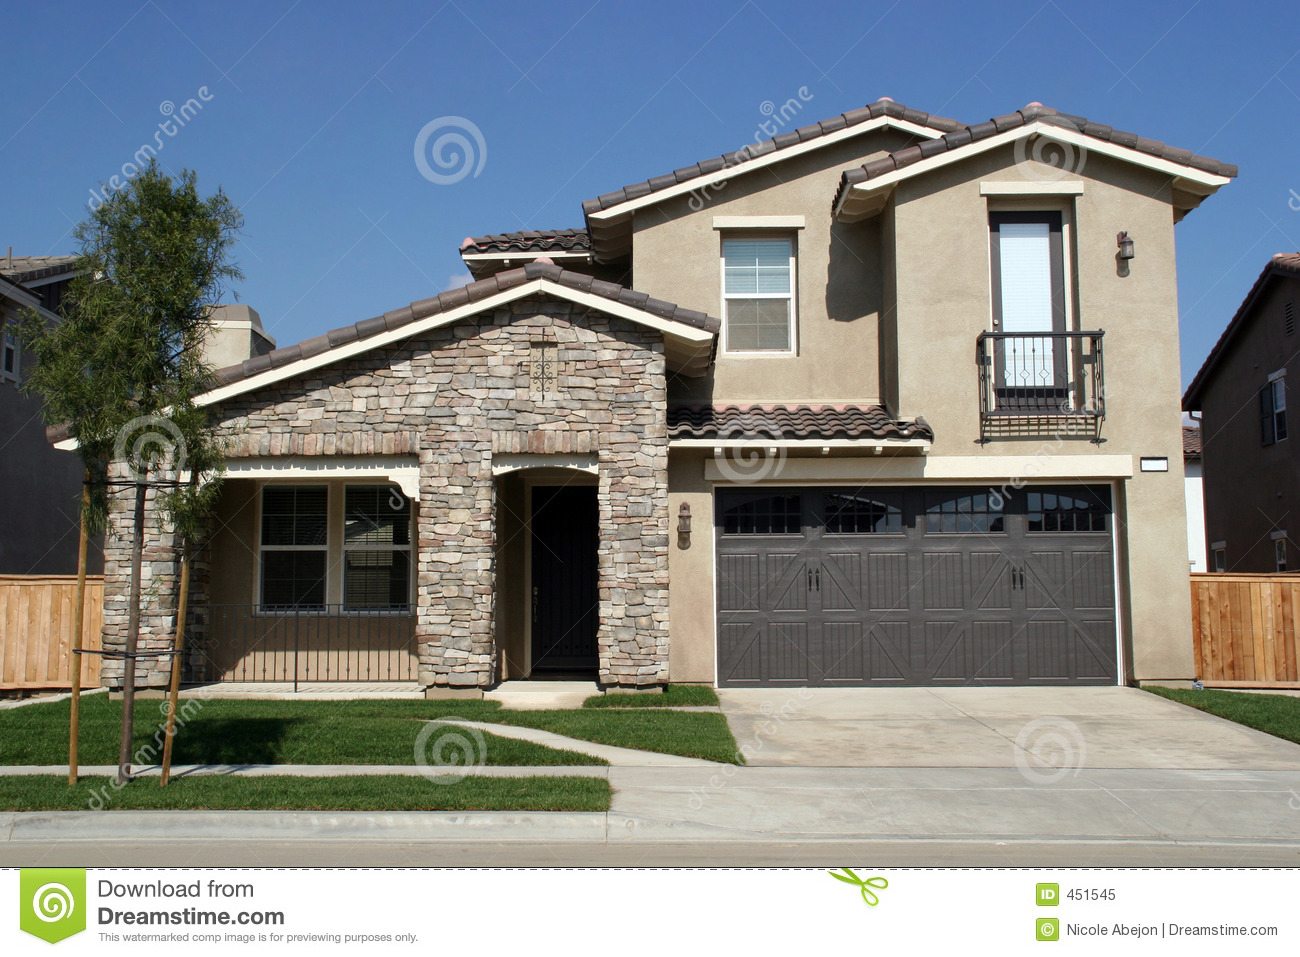 Southern ca home royalty free stock photo image 451545 for Free house photos